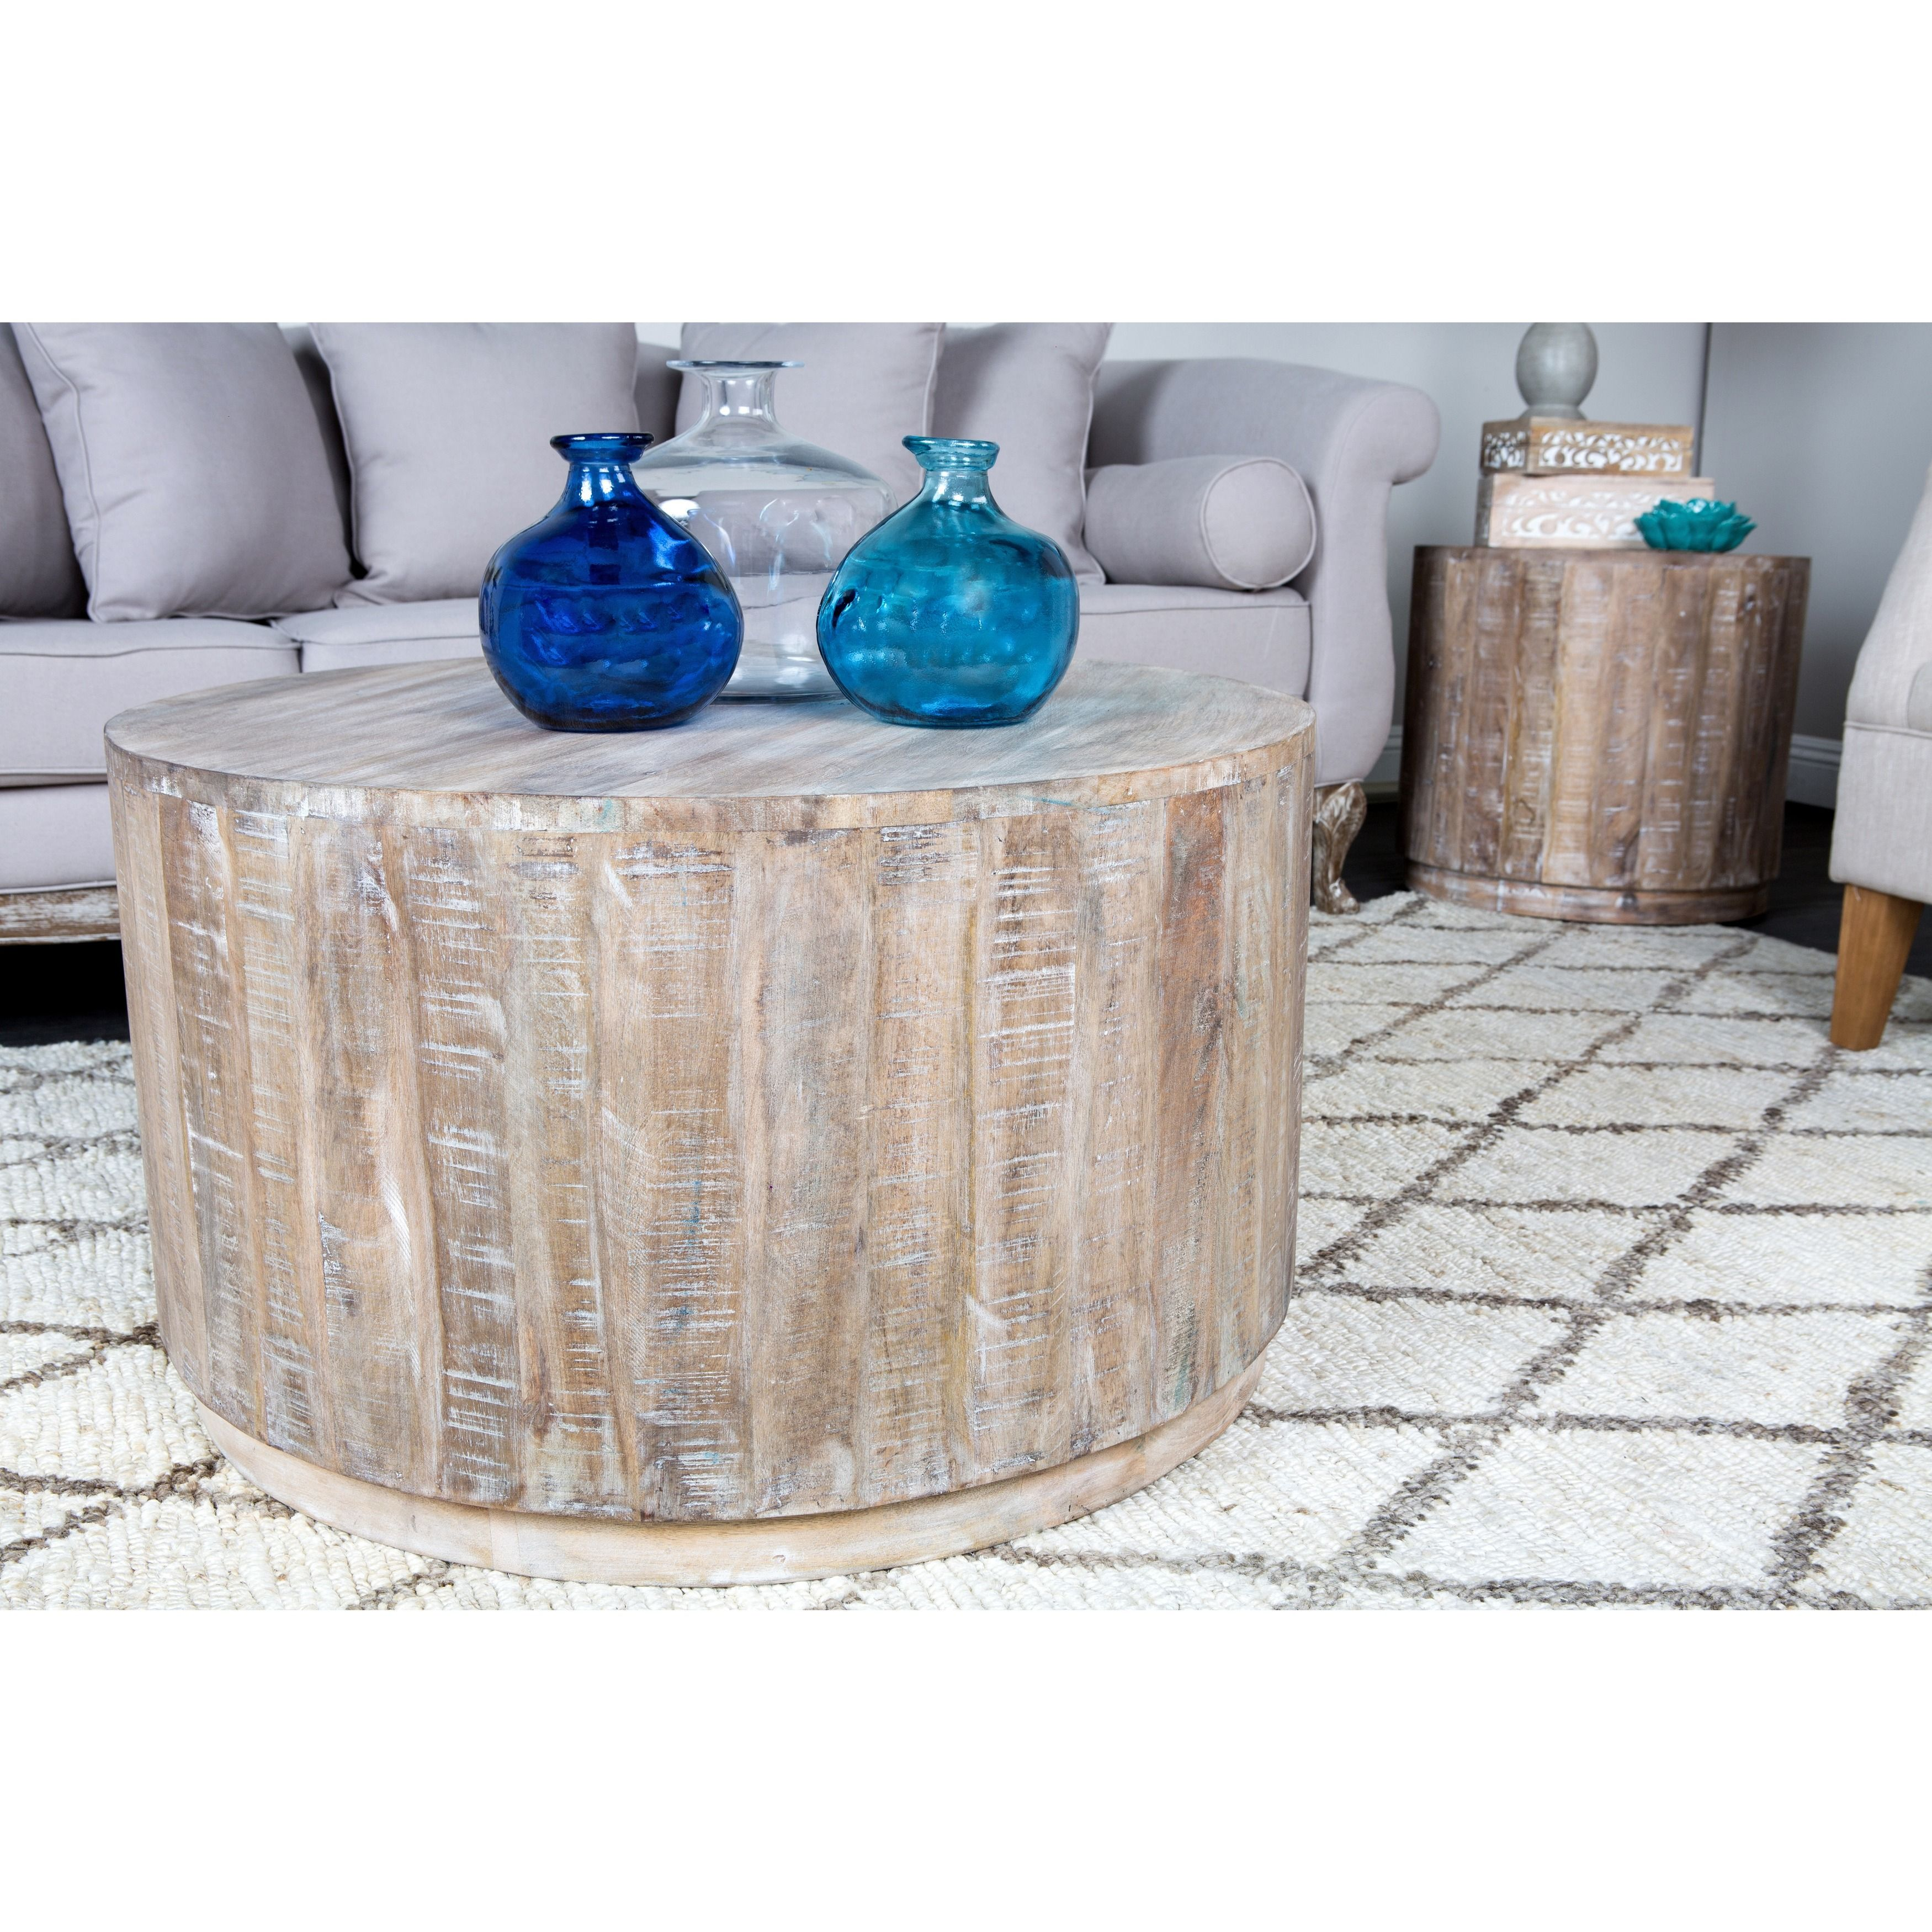 Featuring A Distressed White Patina Finished Mango Wood Construction This Coffee Table Beautifully Blends Vintage And Contemporary Kosas Home